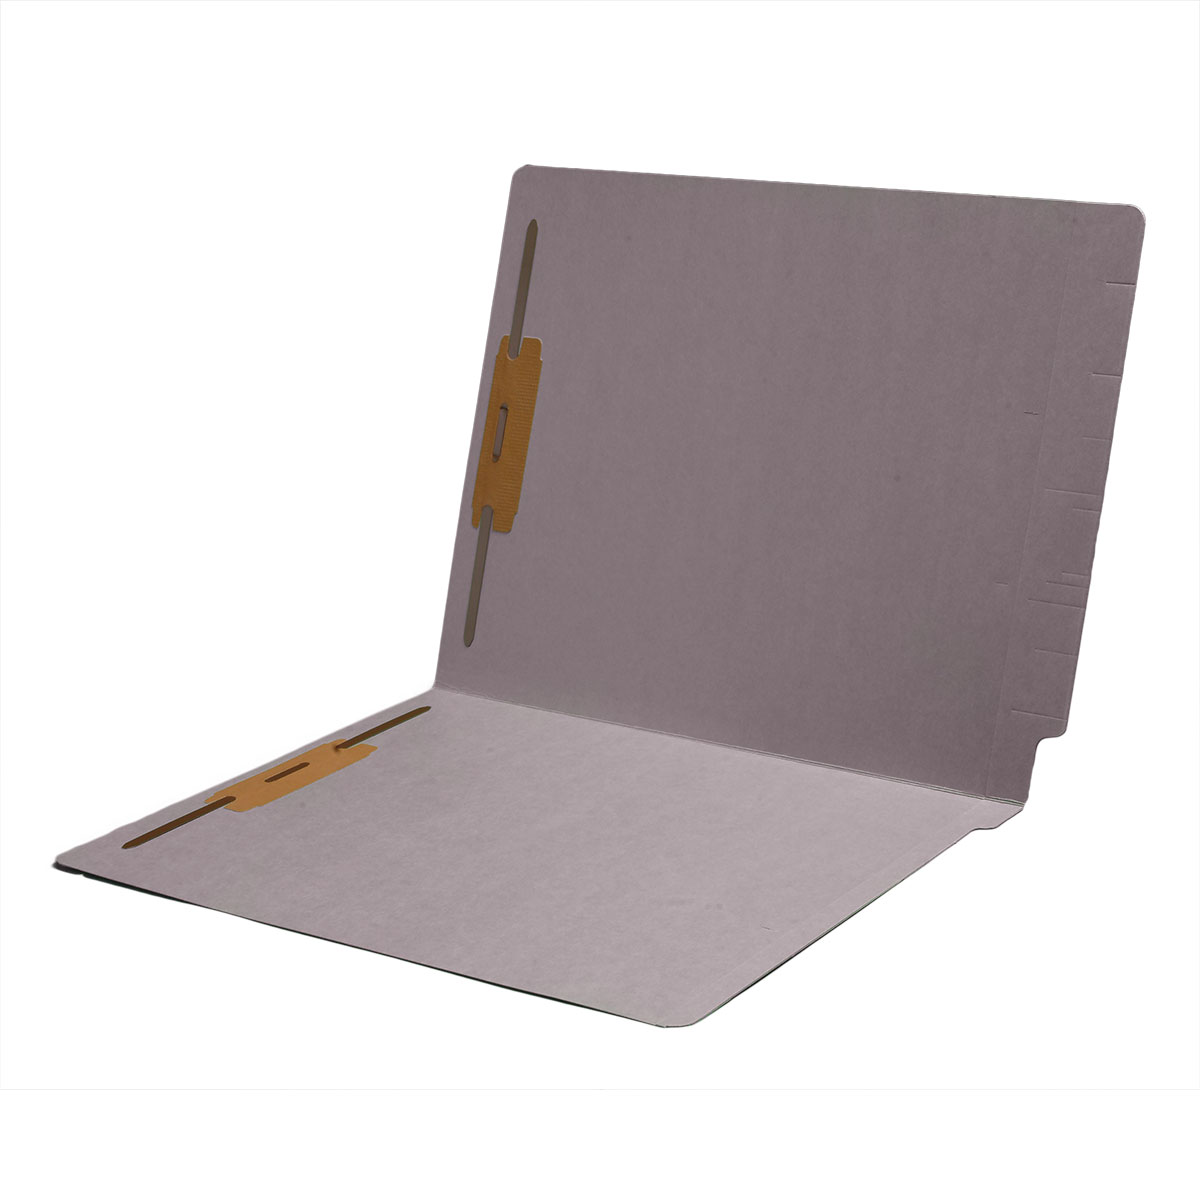 S-1602-GRY - 14 pt Color Folders, Full Cut 2-Ply End Tab, Letter Size, 2 Fasteners in Pos #1 & #3, Gray (Box of 50)